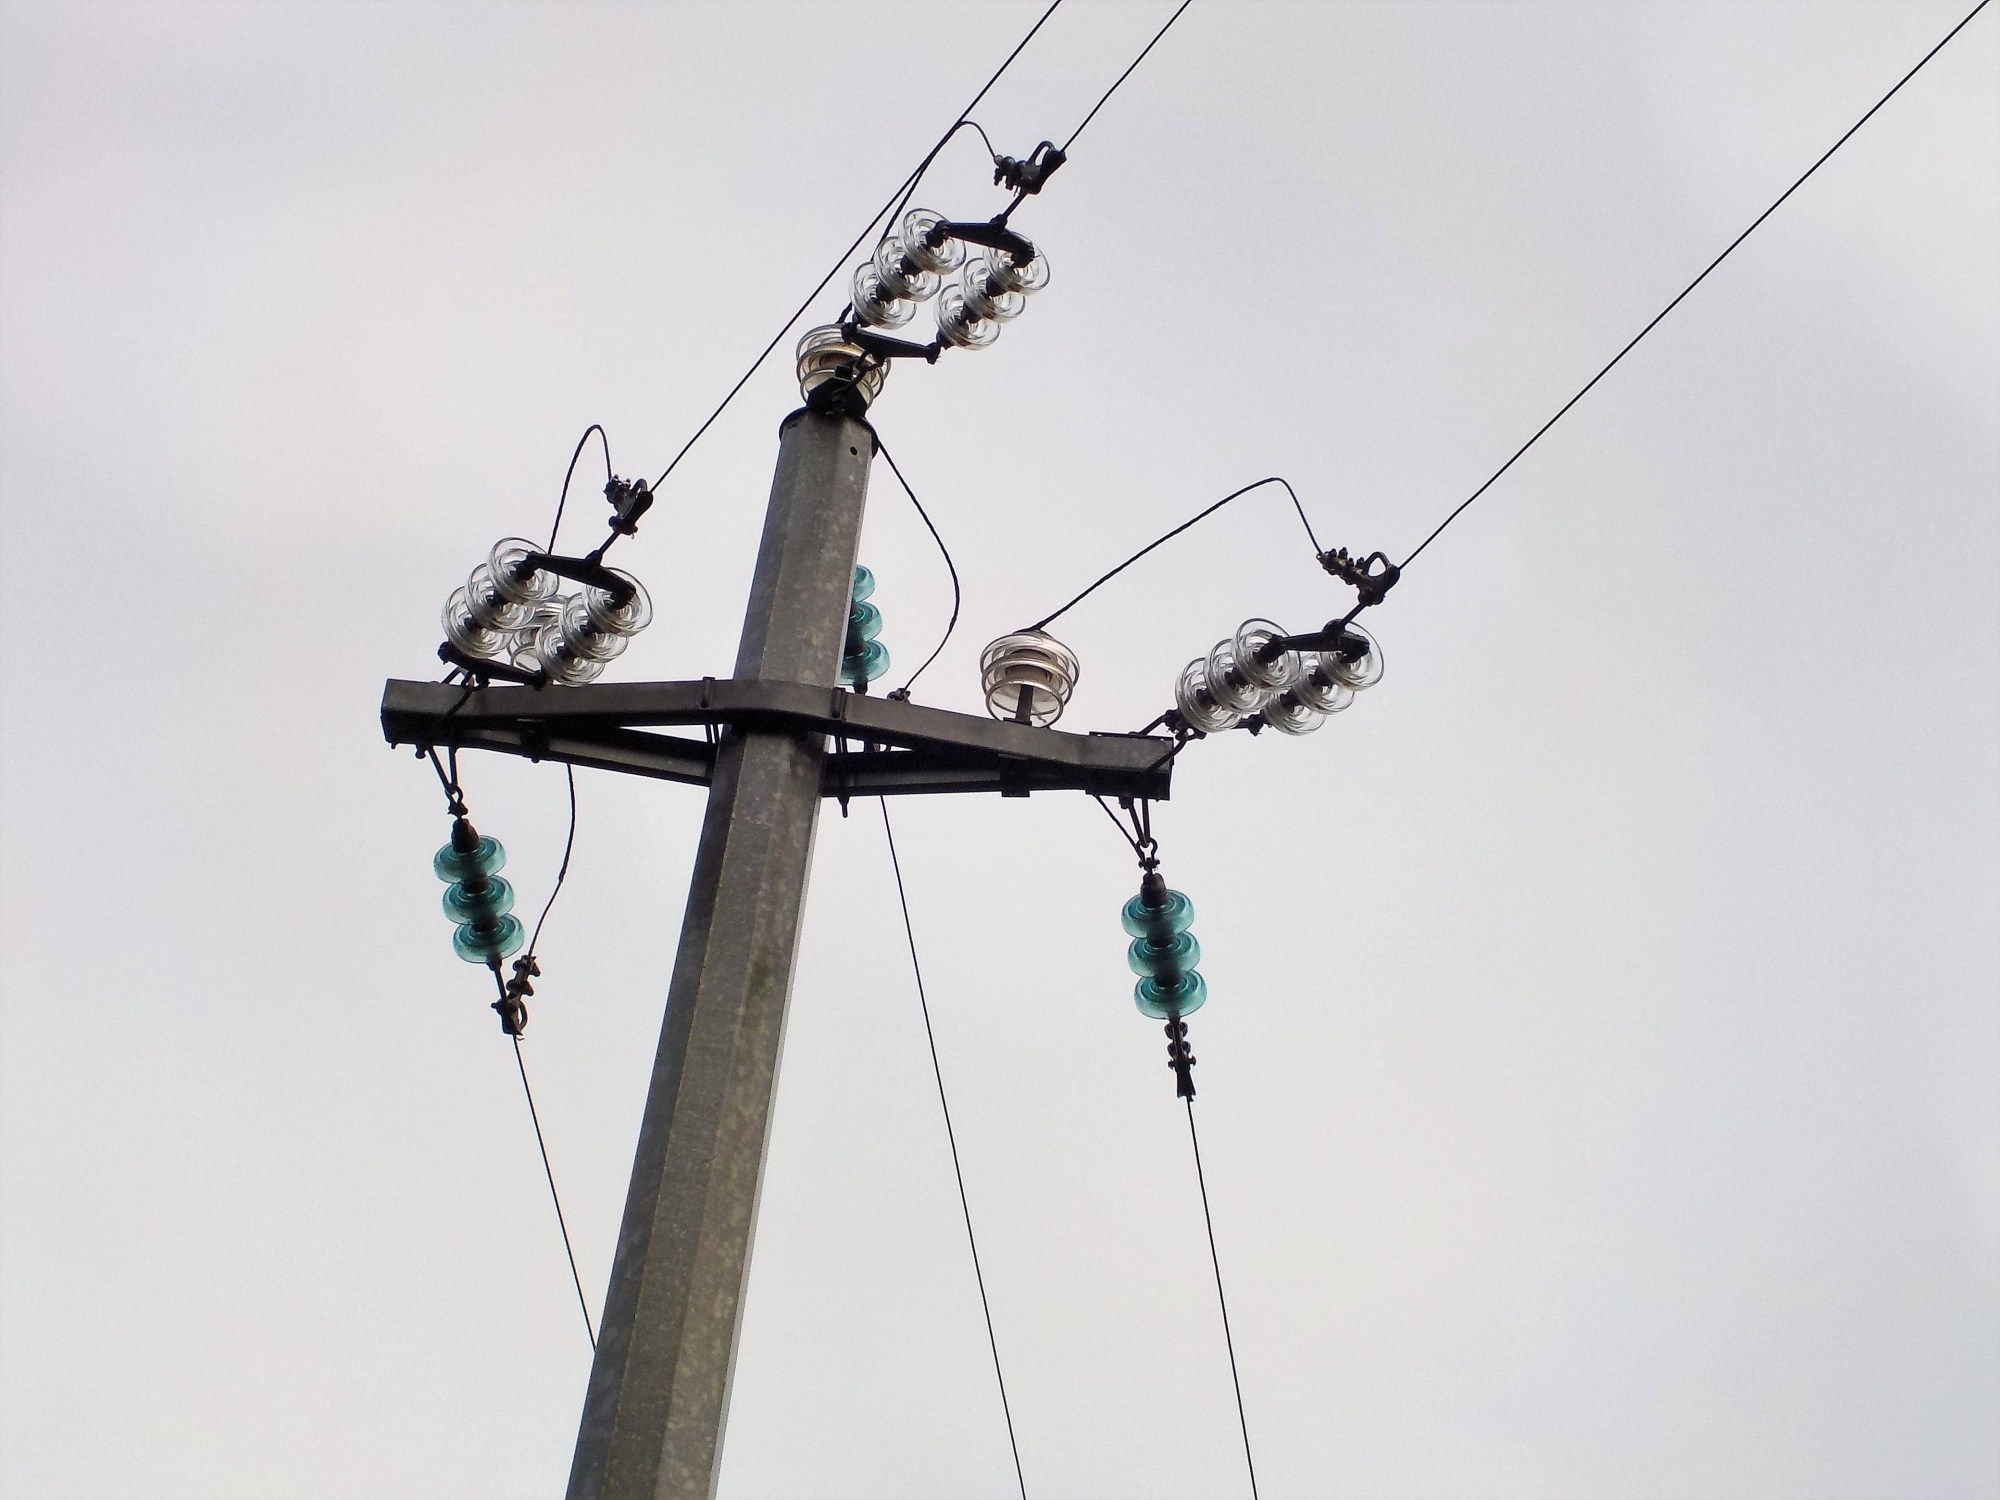 hight resolution of file high voltage cables with glass insulators jpg